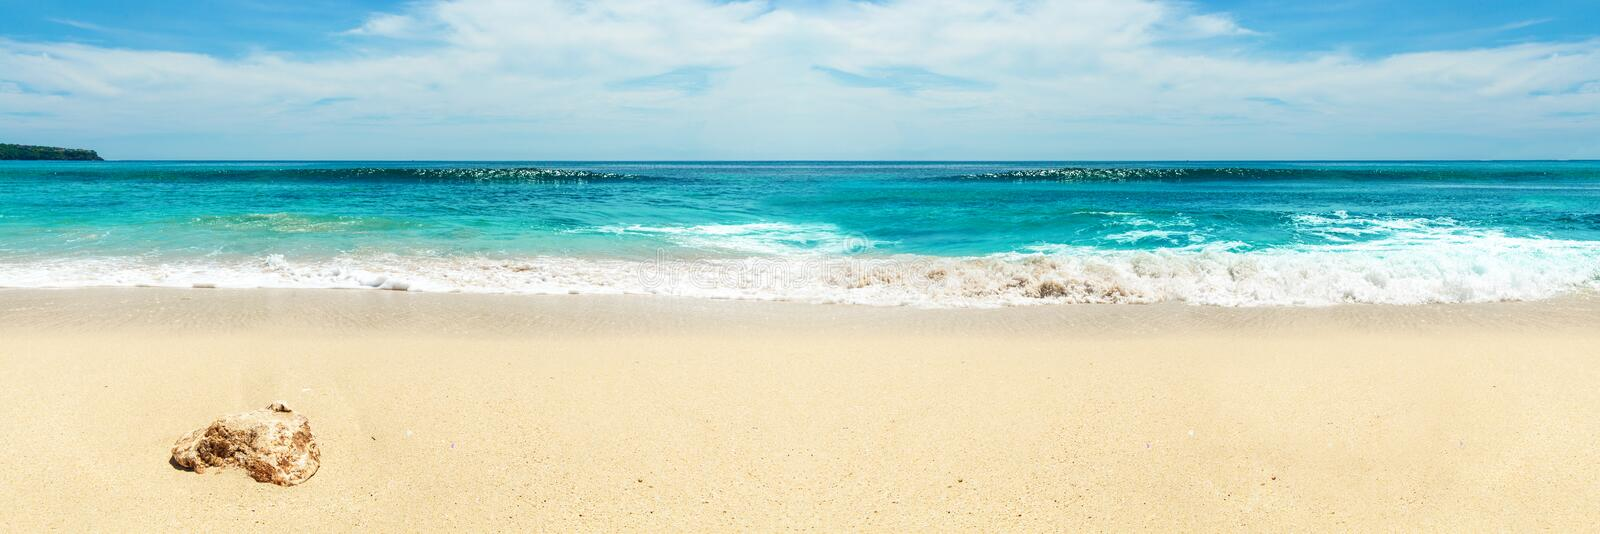 Panorama de plage blanche comme neige images stock